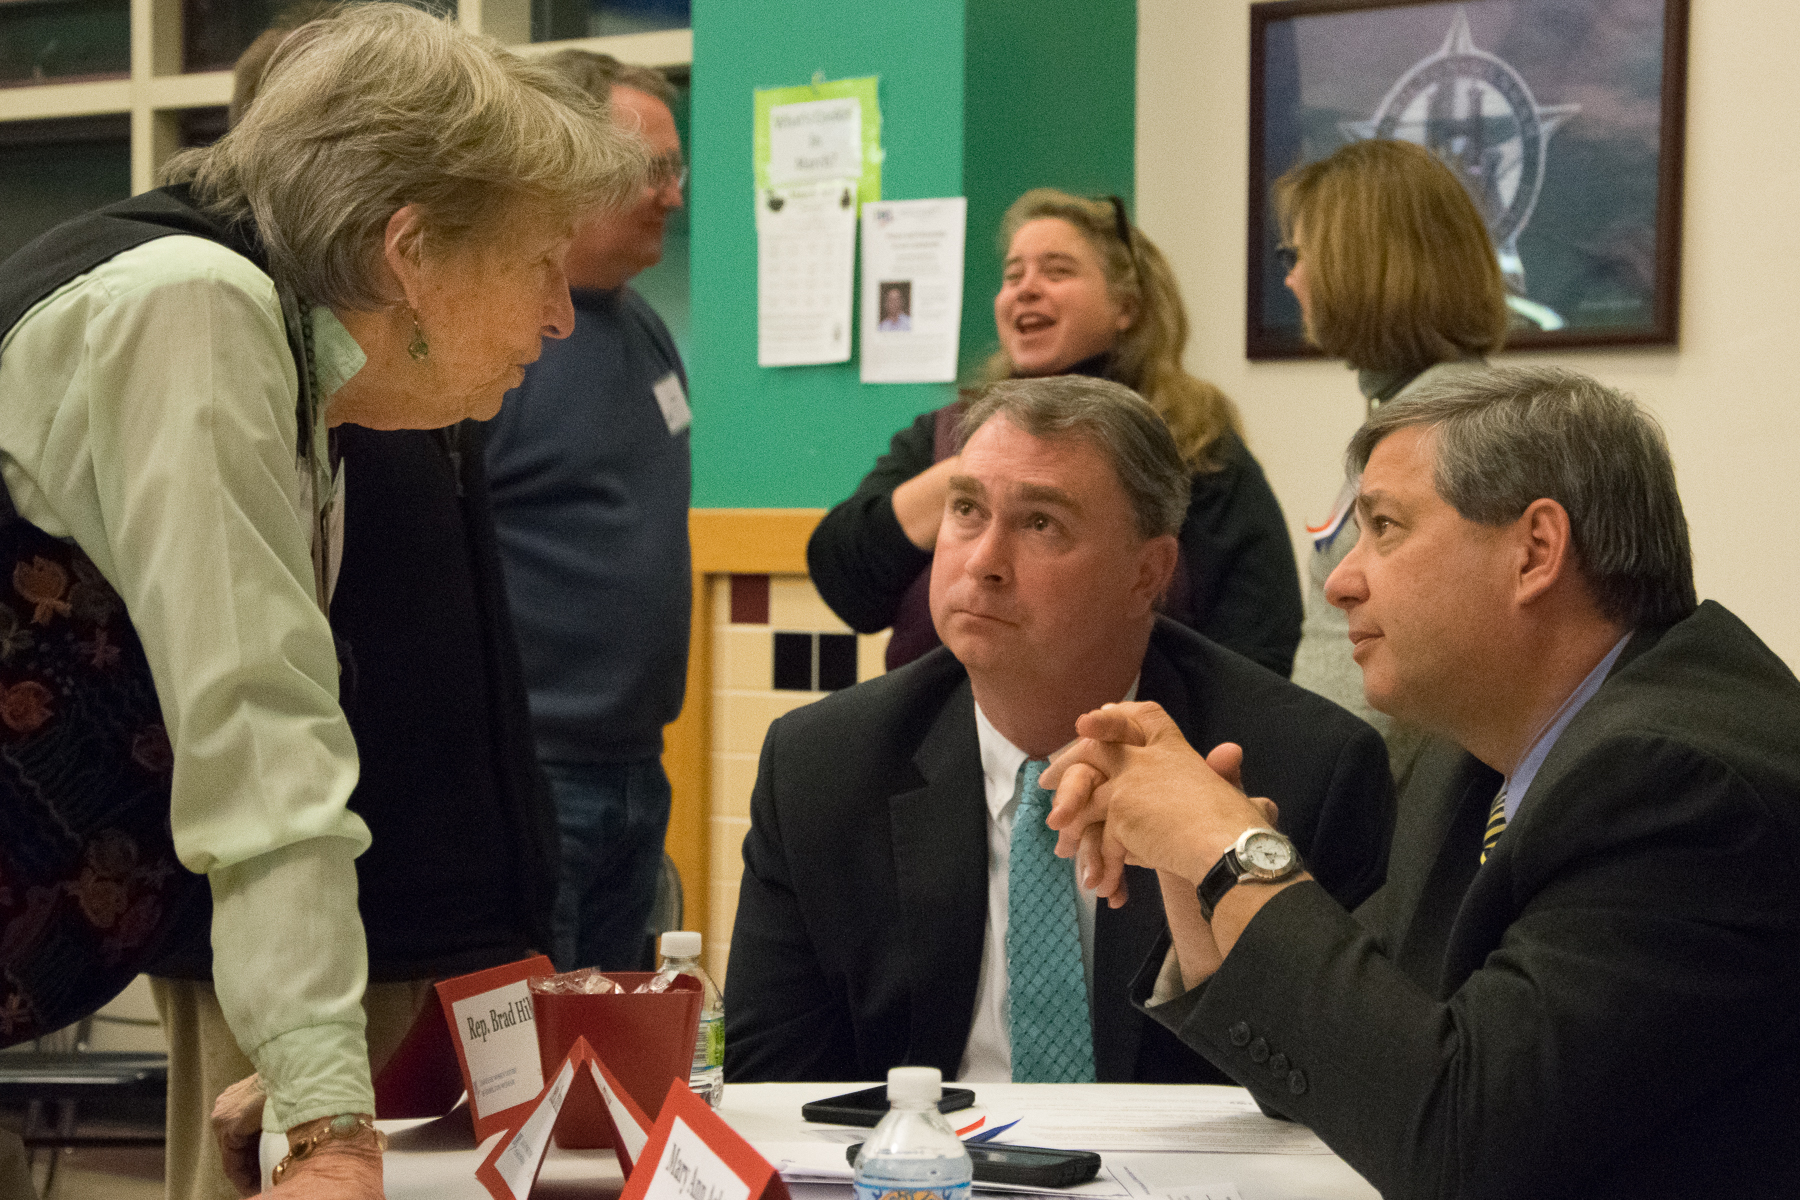 A member of LWV-HW speaks with local legislators